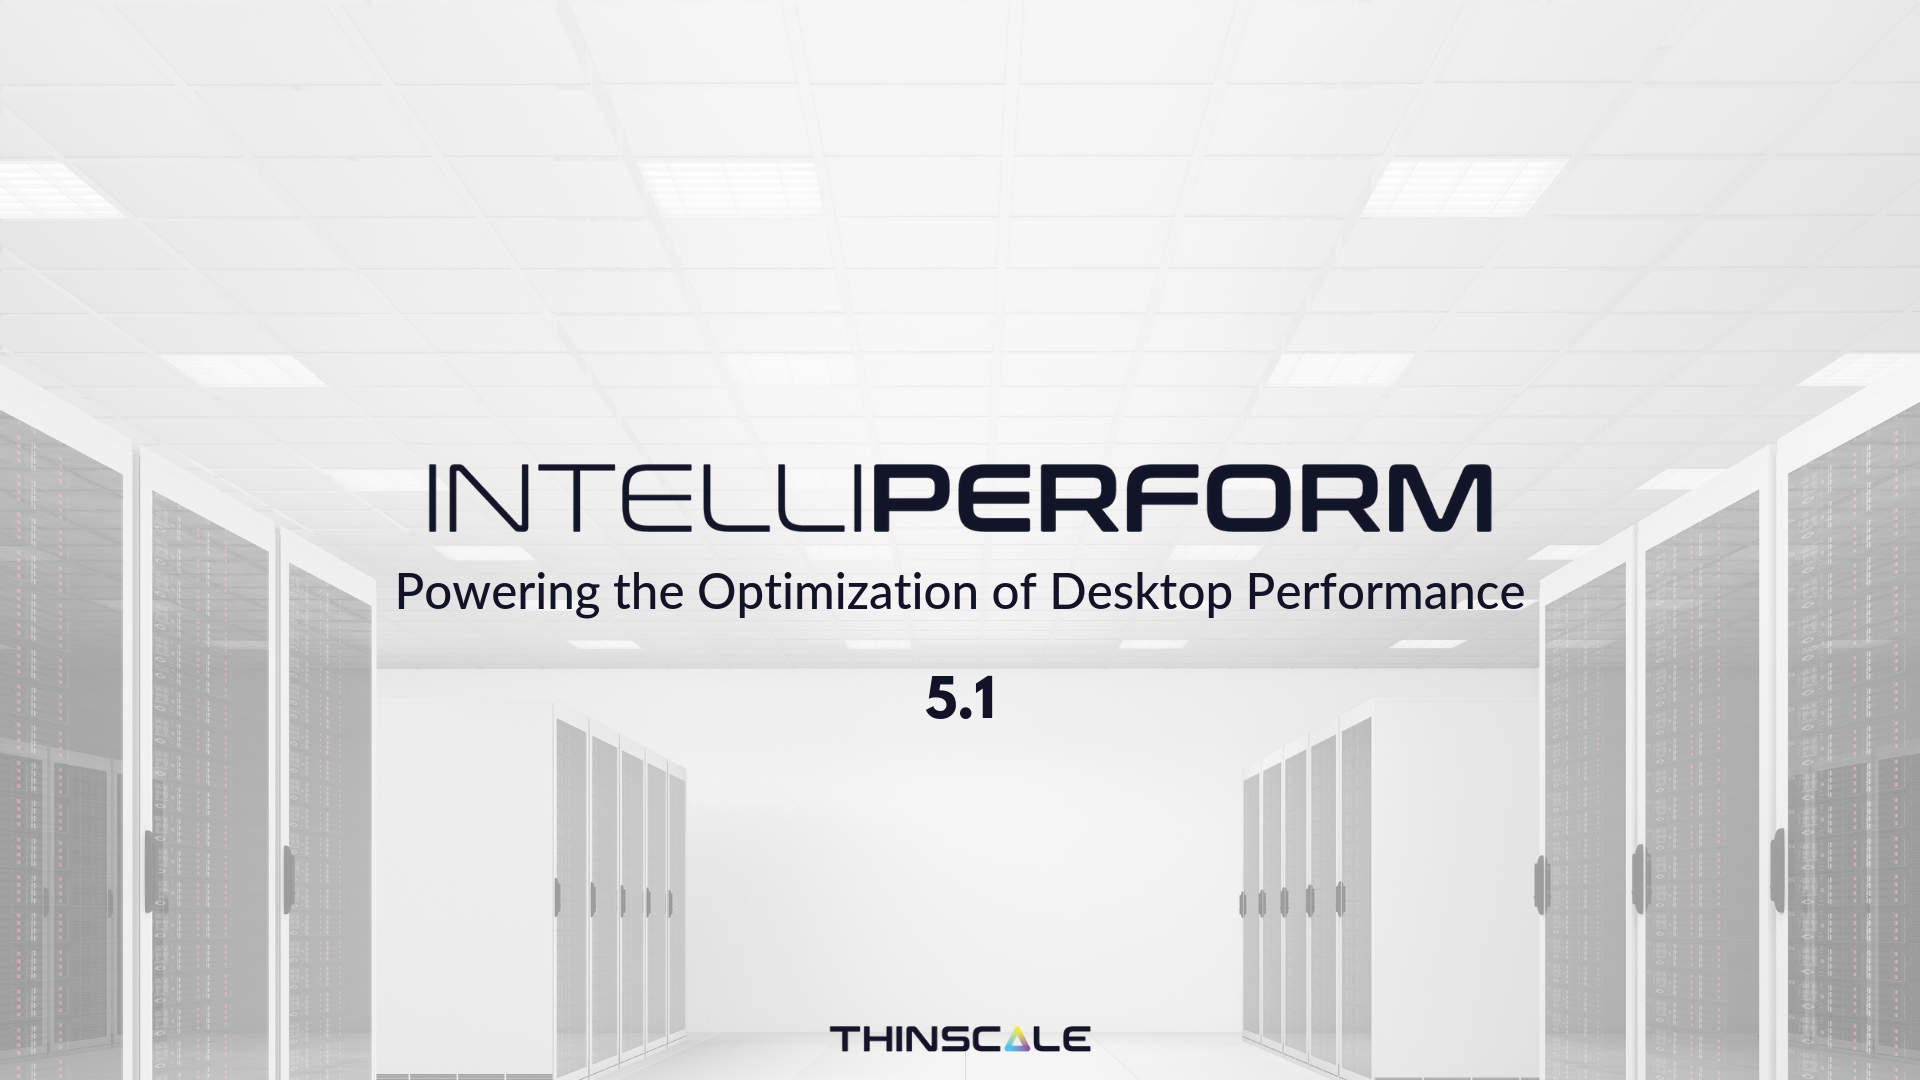 IntelliPerform 5.1 released